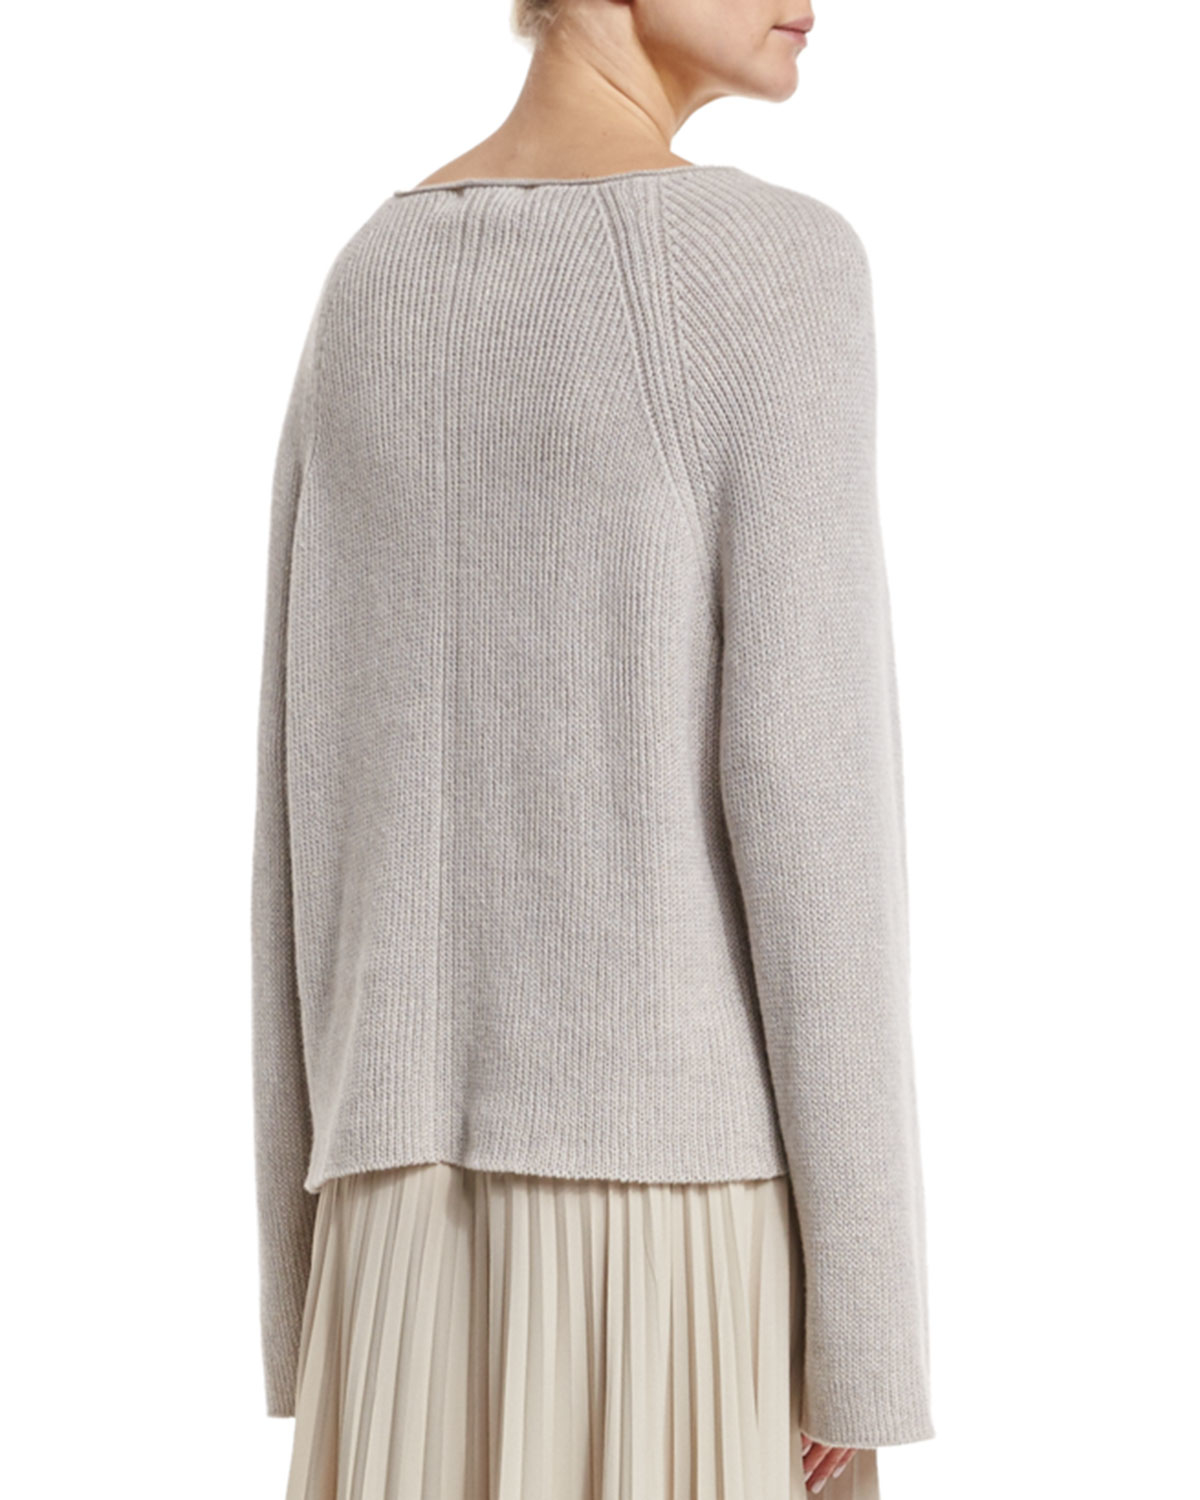 606f9b413ef6 Lyst - Helmut Lang Cashmere-blend Ribbed Pullover Sweater in Natural